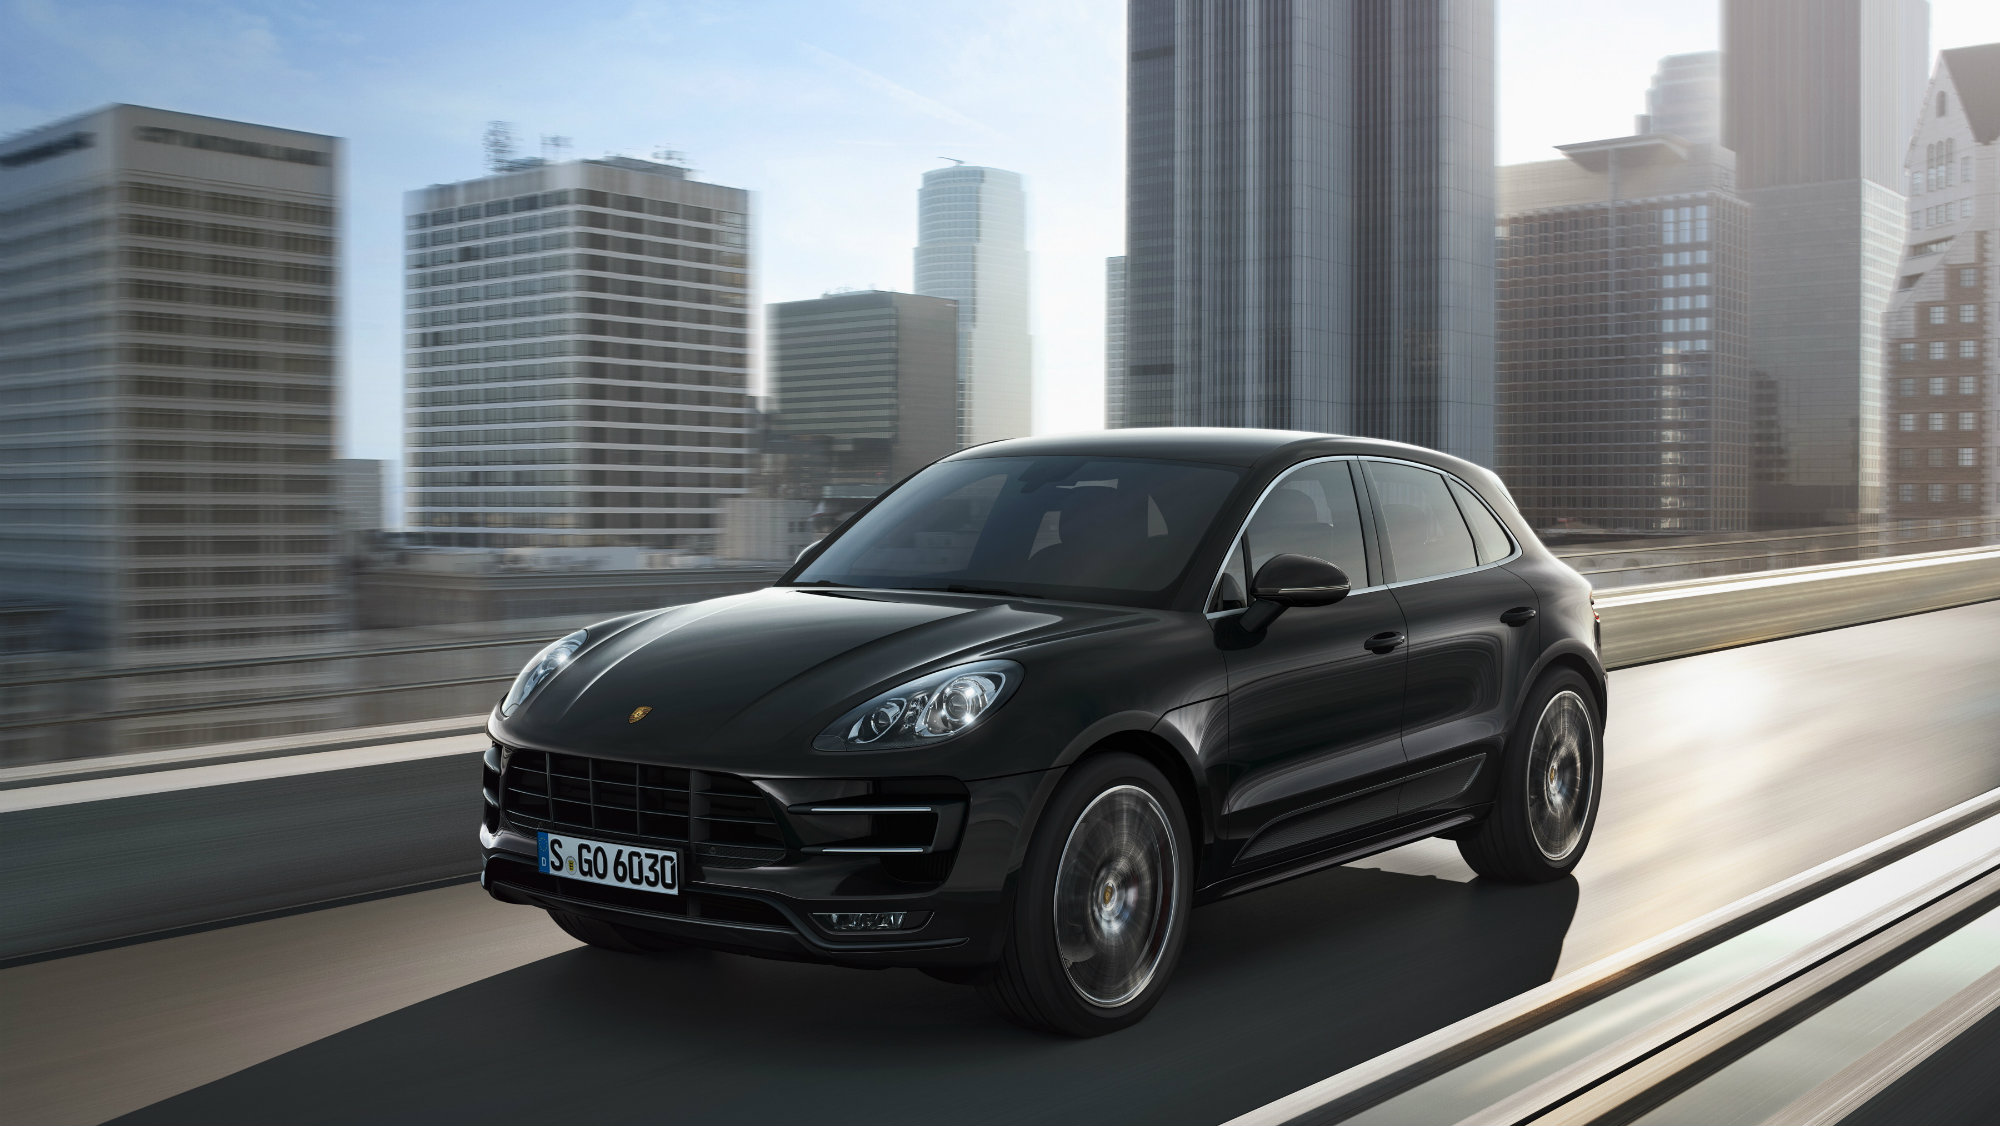 Commercial handout image released by Porsche Holding SE on 20 November showing the Porsche Macan Turbo.  Porsche is expanding its range to include a whole new class of vehicle. The Macan is the first Porsche model to break into the compact SUV segment and is poised to set new standards in the field of driving dynamics and enjoyment – on both paved streets uneven terrain.